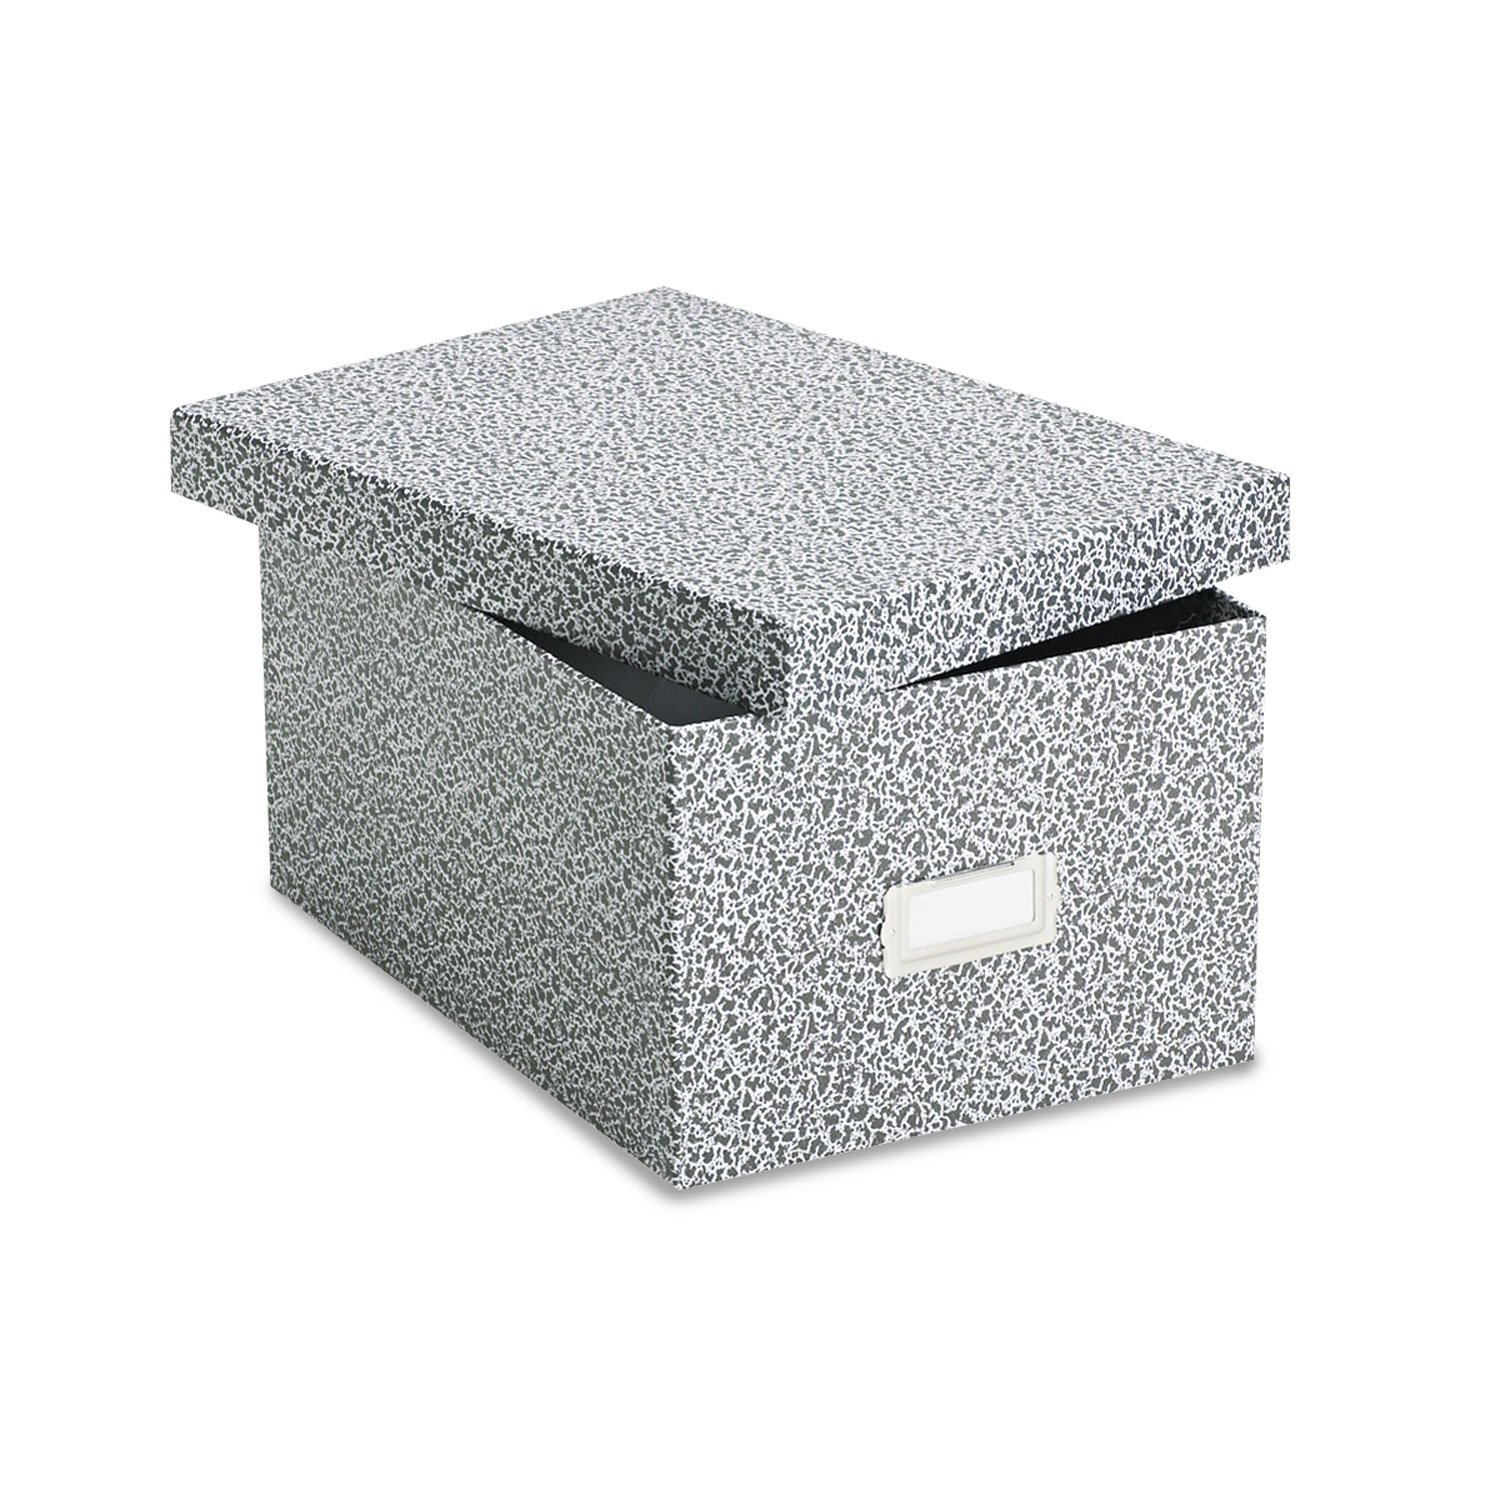 OXF40590 - Oxford Plastic Index Card Boxes w/Lids by Oxford